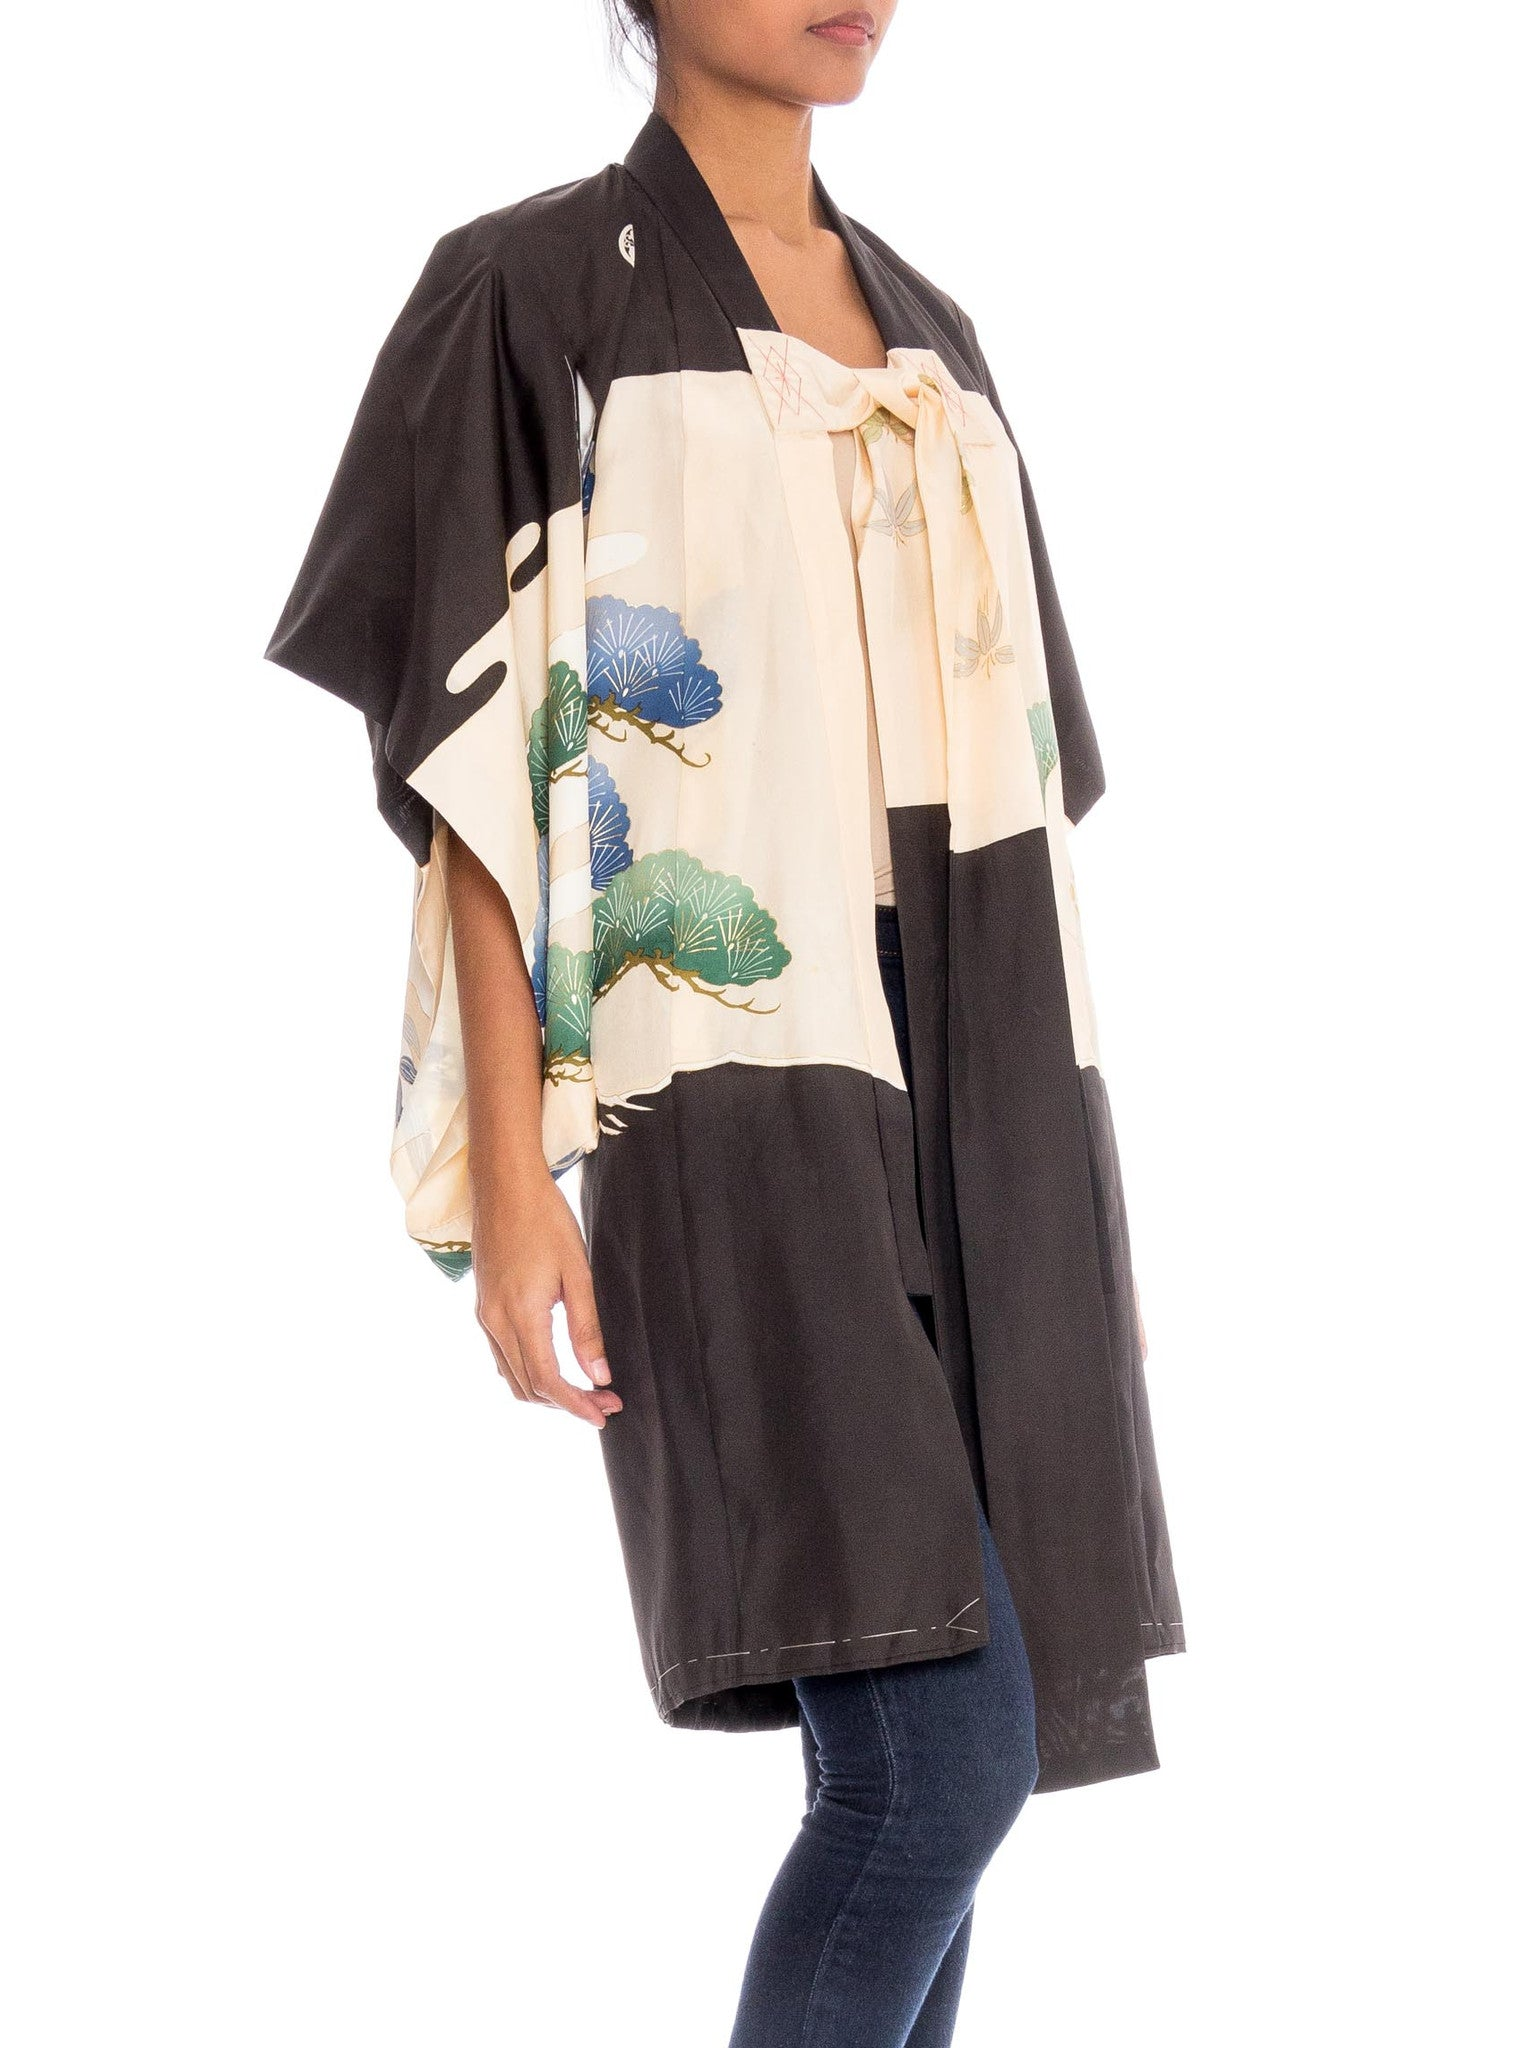 1970S Black & White Silk Kimono Embroidered In Gold With A Giant Eagle